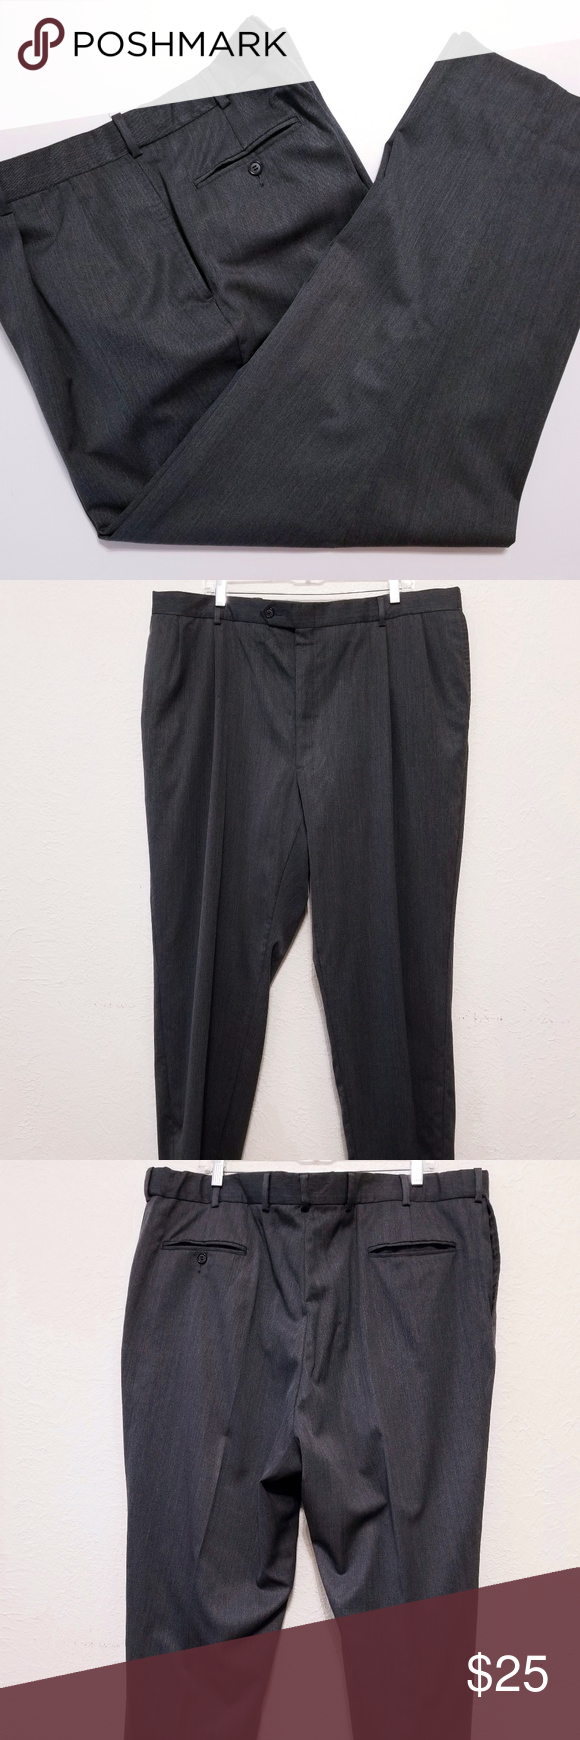 Austin Reed Men S Dress Pants Size 42x29 Gray Austin Reed Men S Dress Pants Size 42x29 Gray Slacks Wool Ble Mens Dress Pants Clothes Design Grey Slacks